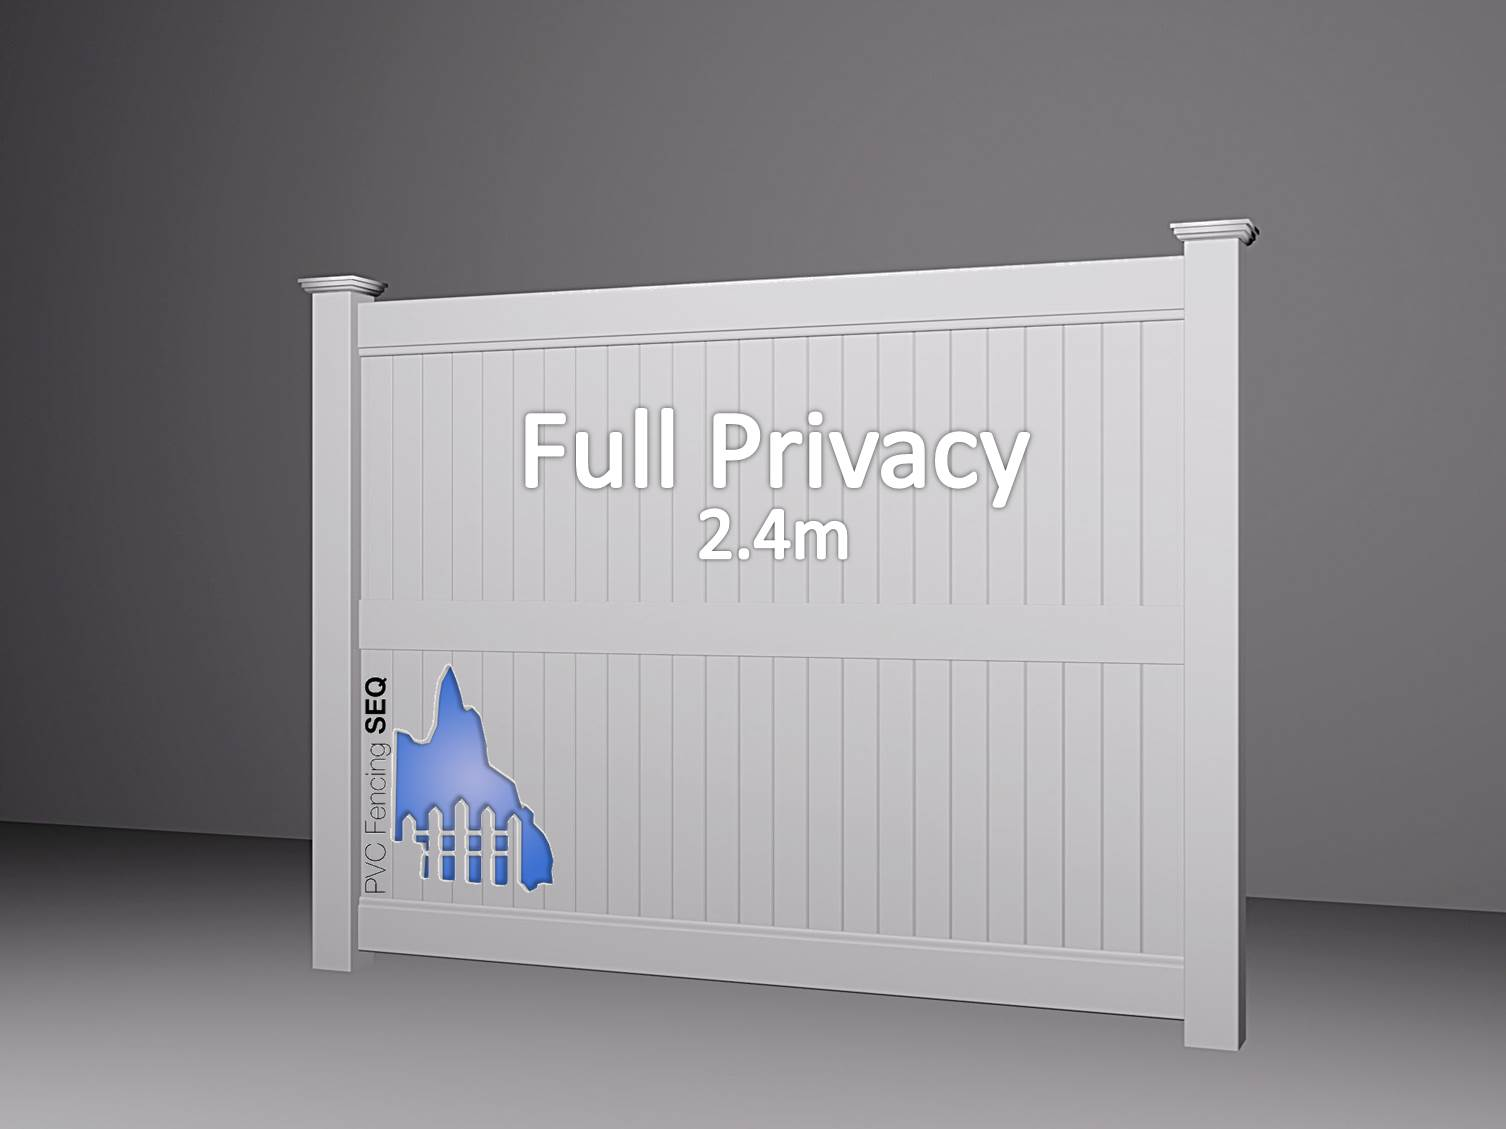 Full Privacy - 2.4m Tall.jpg